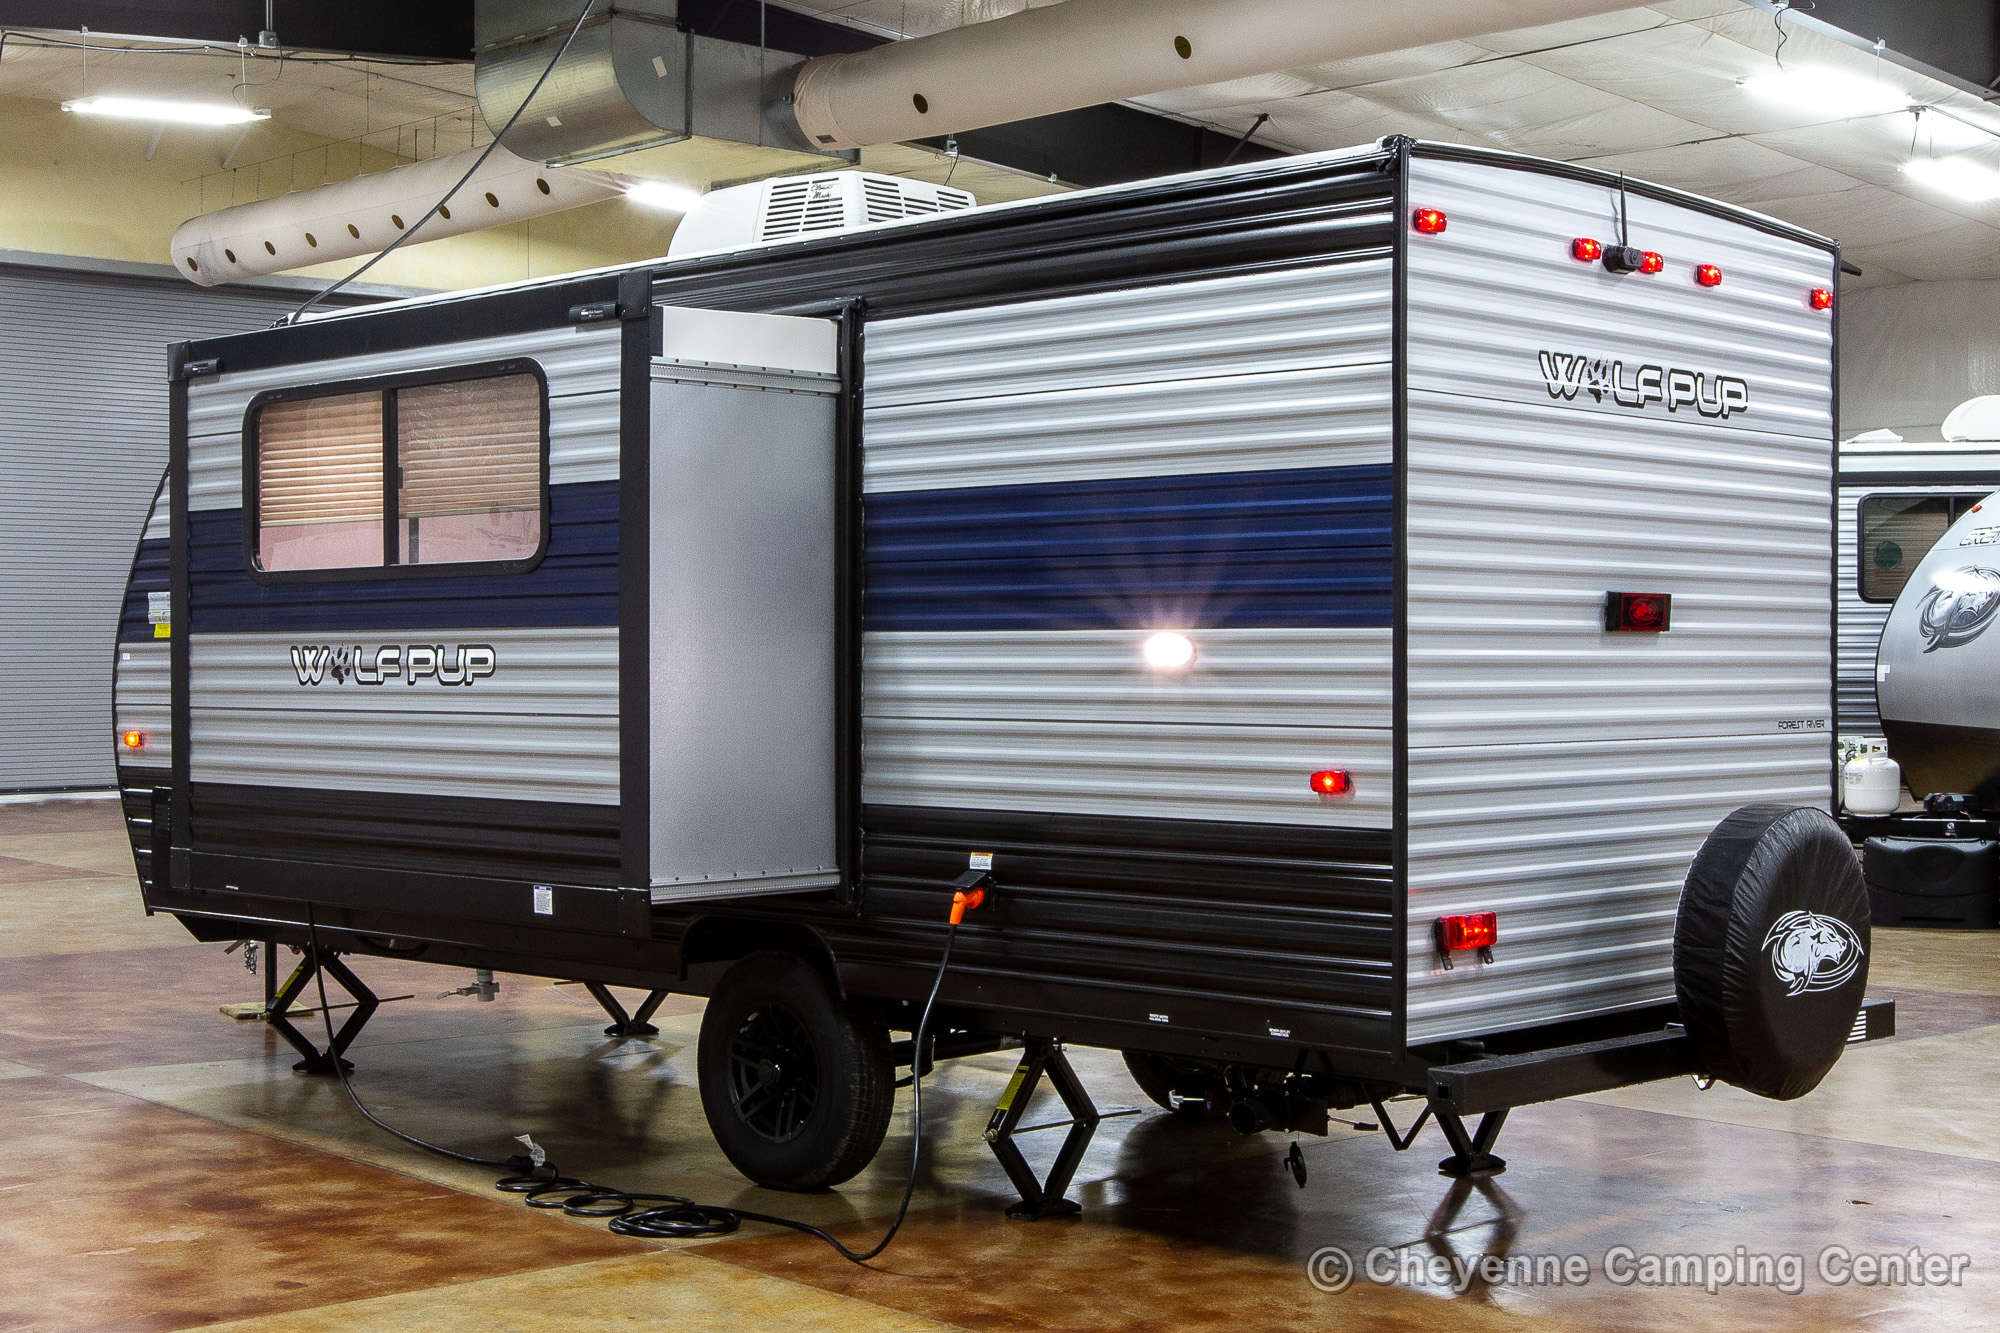 2022 Forest River Cherokee Wolf Pup 17JG Bunkhouse Travel Trailer Exterior Image